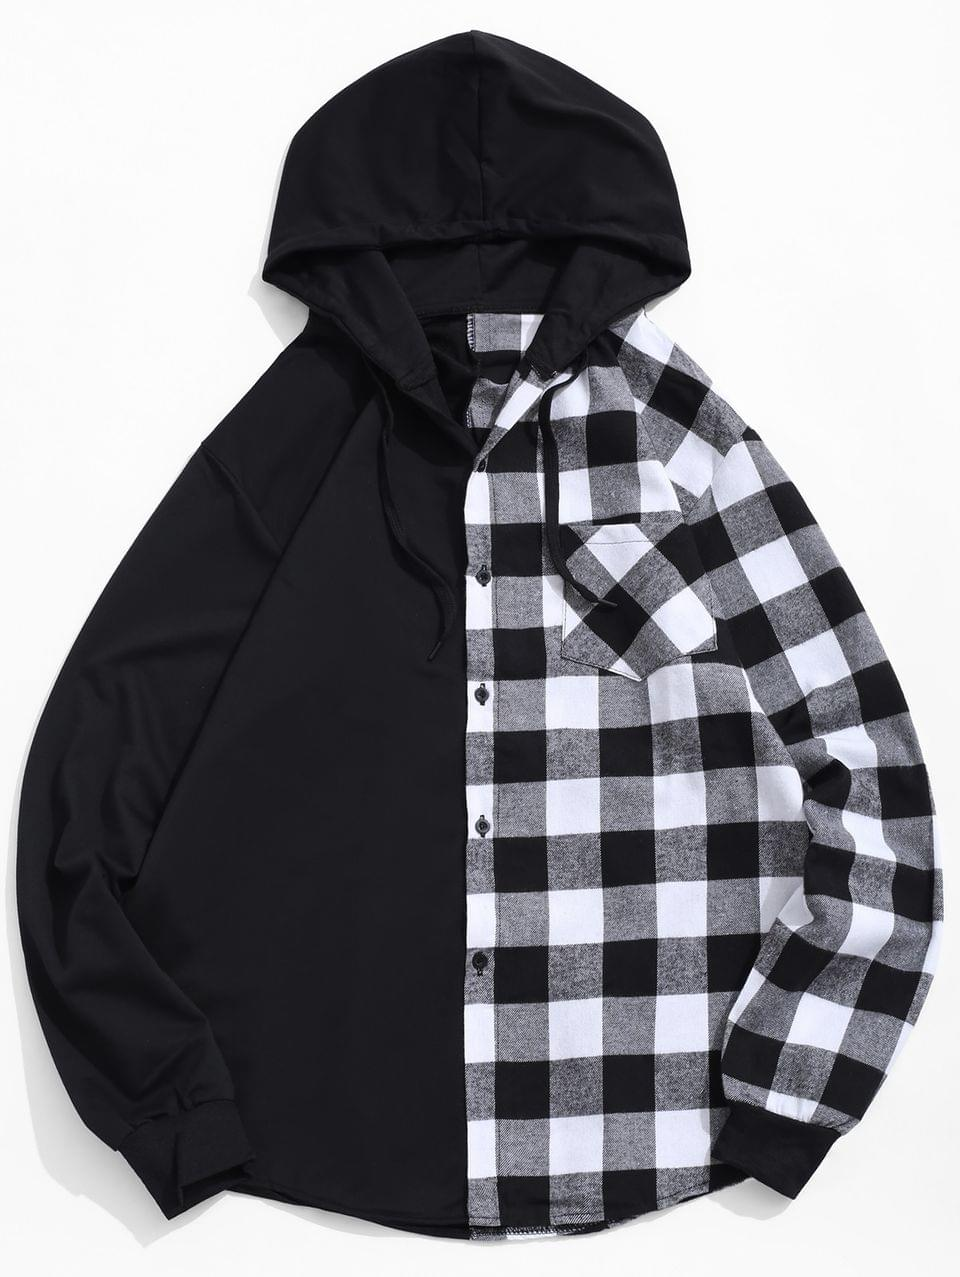 Men's Contrast Plaid Patch Pockets Hooded Shirt - White 2xl